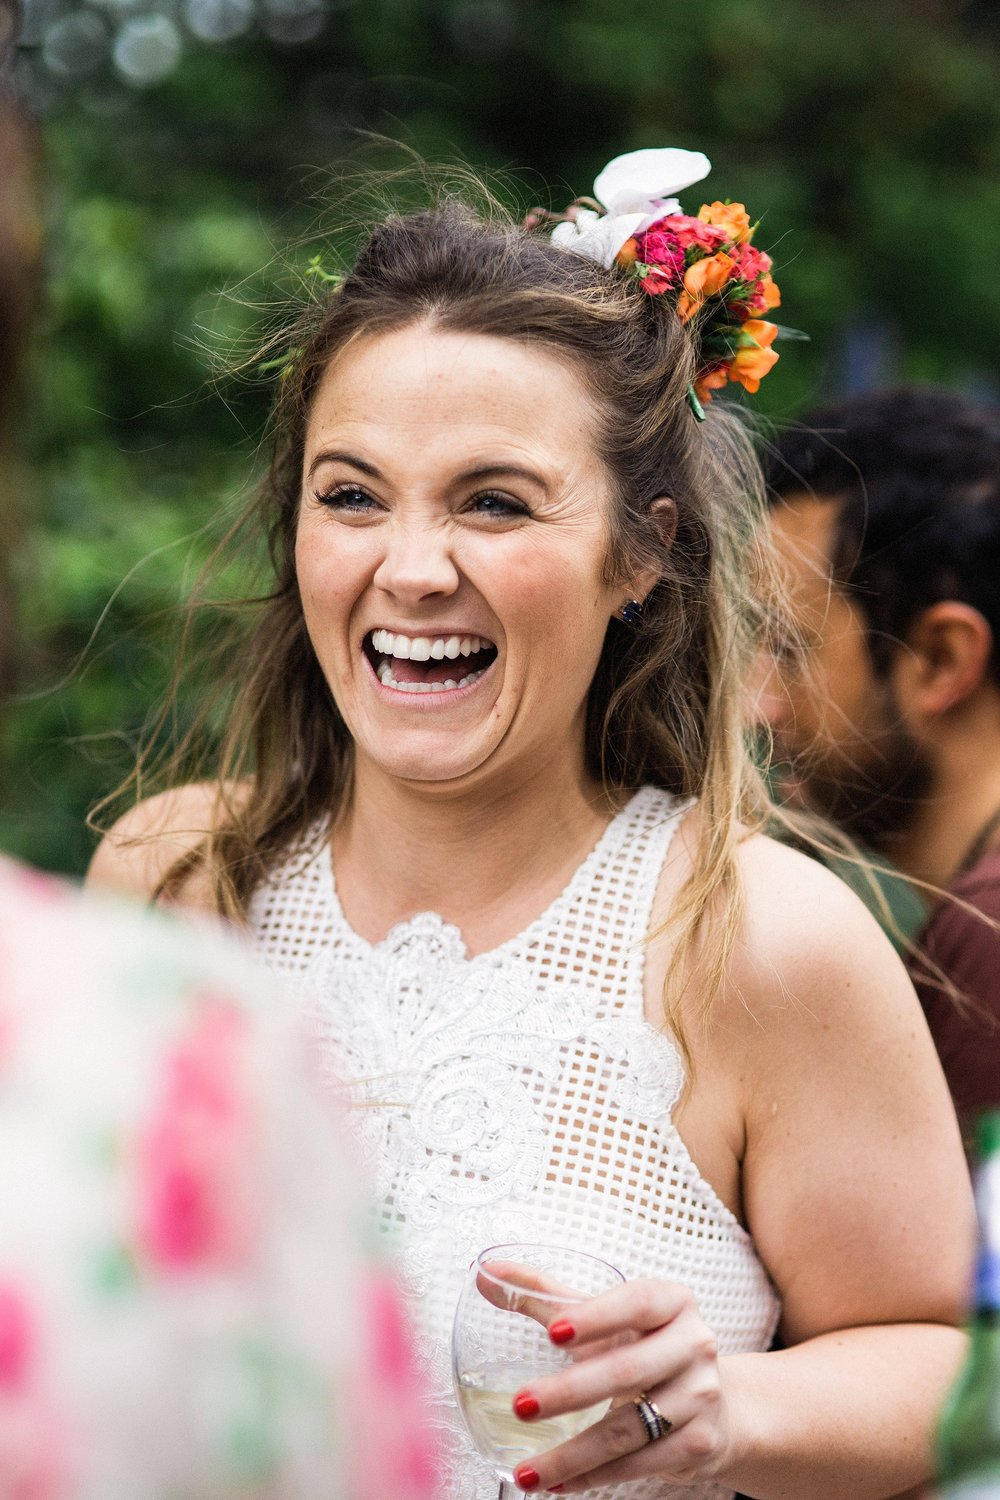 melbourne_wedding_photography_0069-min.jpg